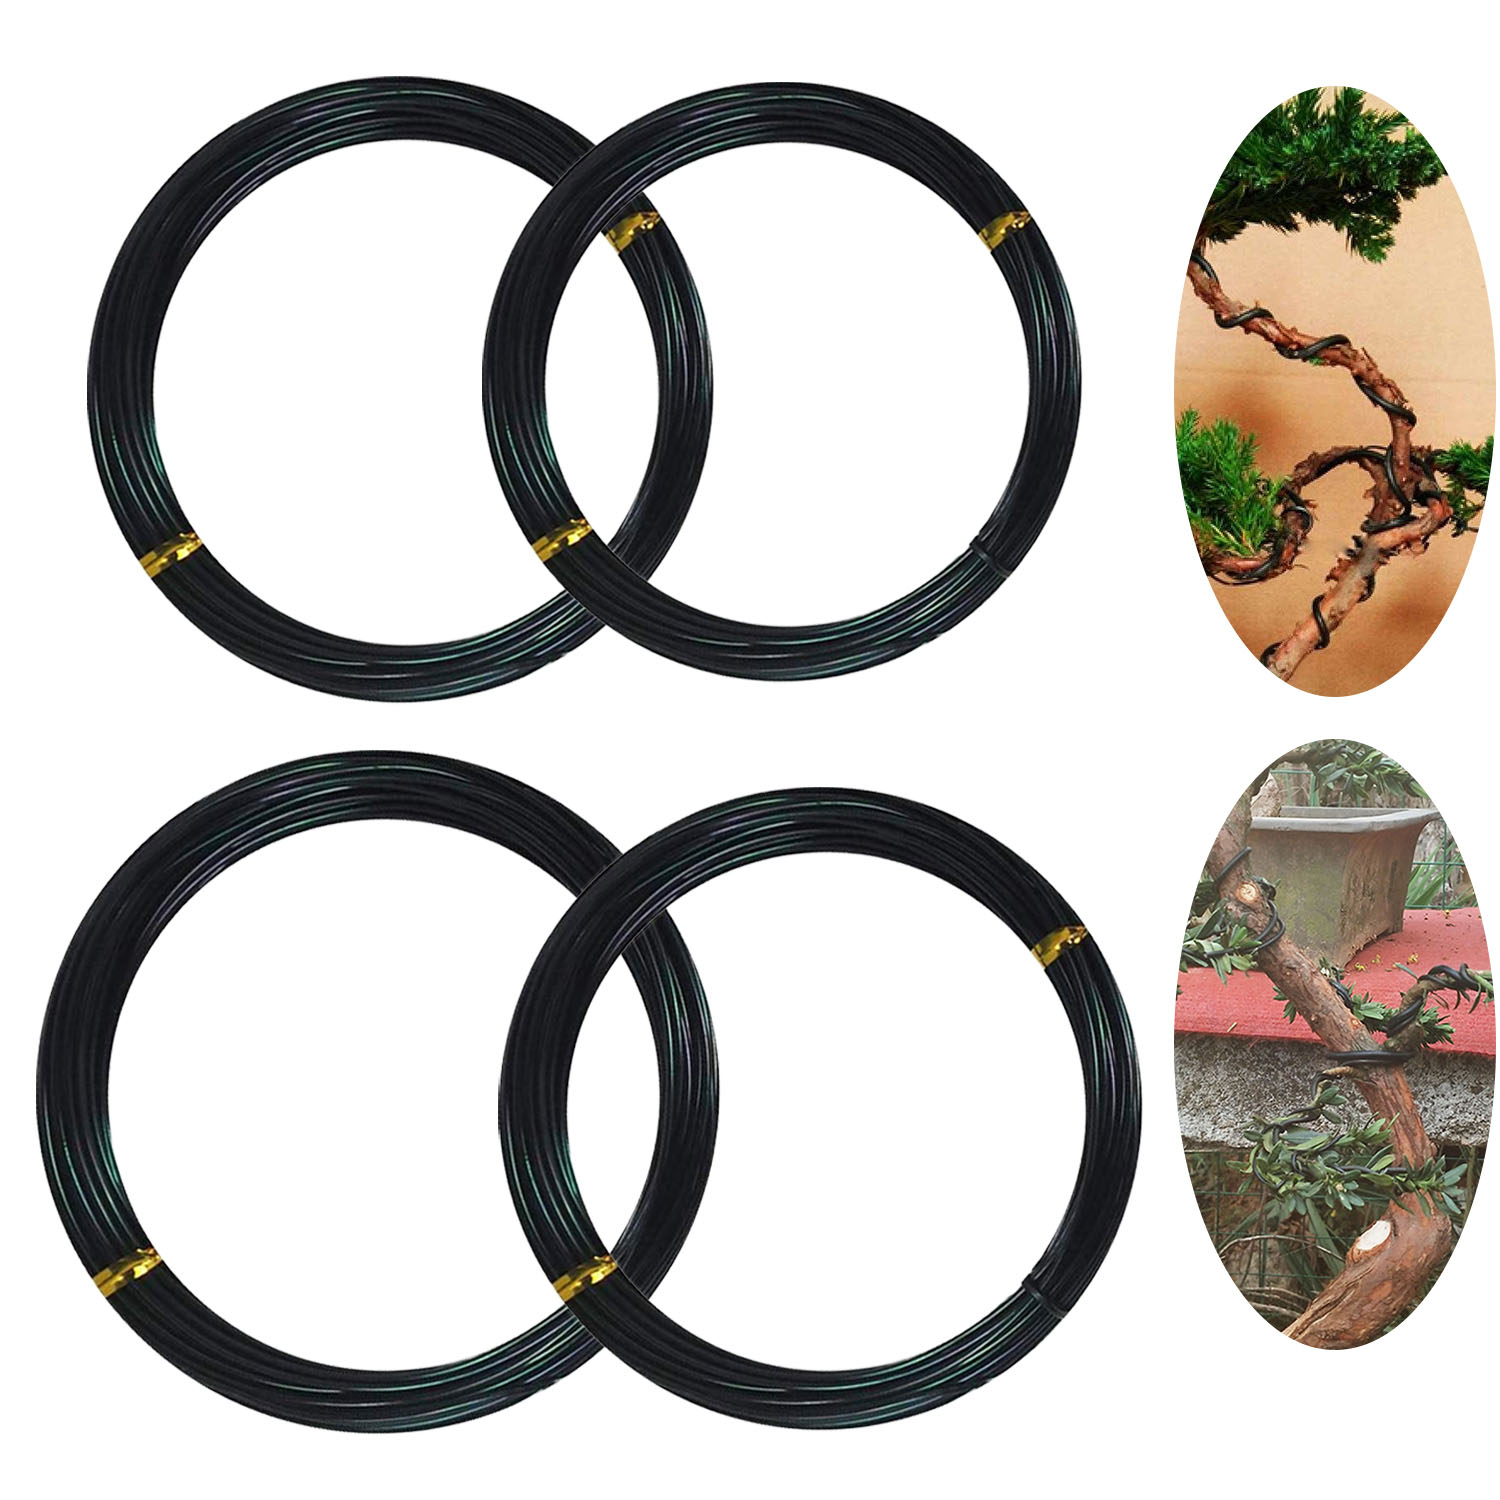 4 Roll 10m Aluminum Tree Training Wires For Garden Plants Bonsai Beginners Trainers Artists 1.0mm/1.5mm/2mm/2.5mm Black